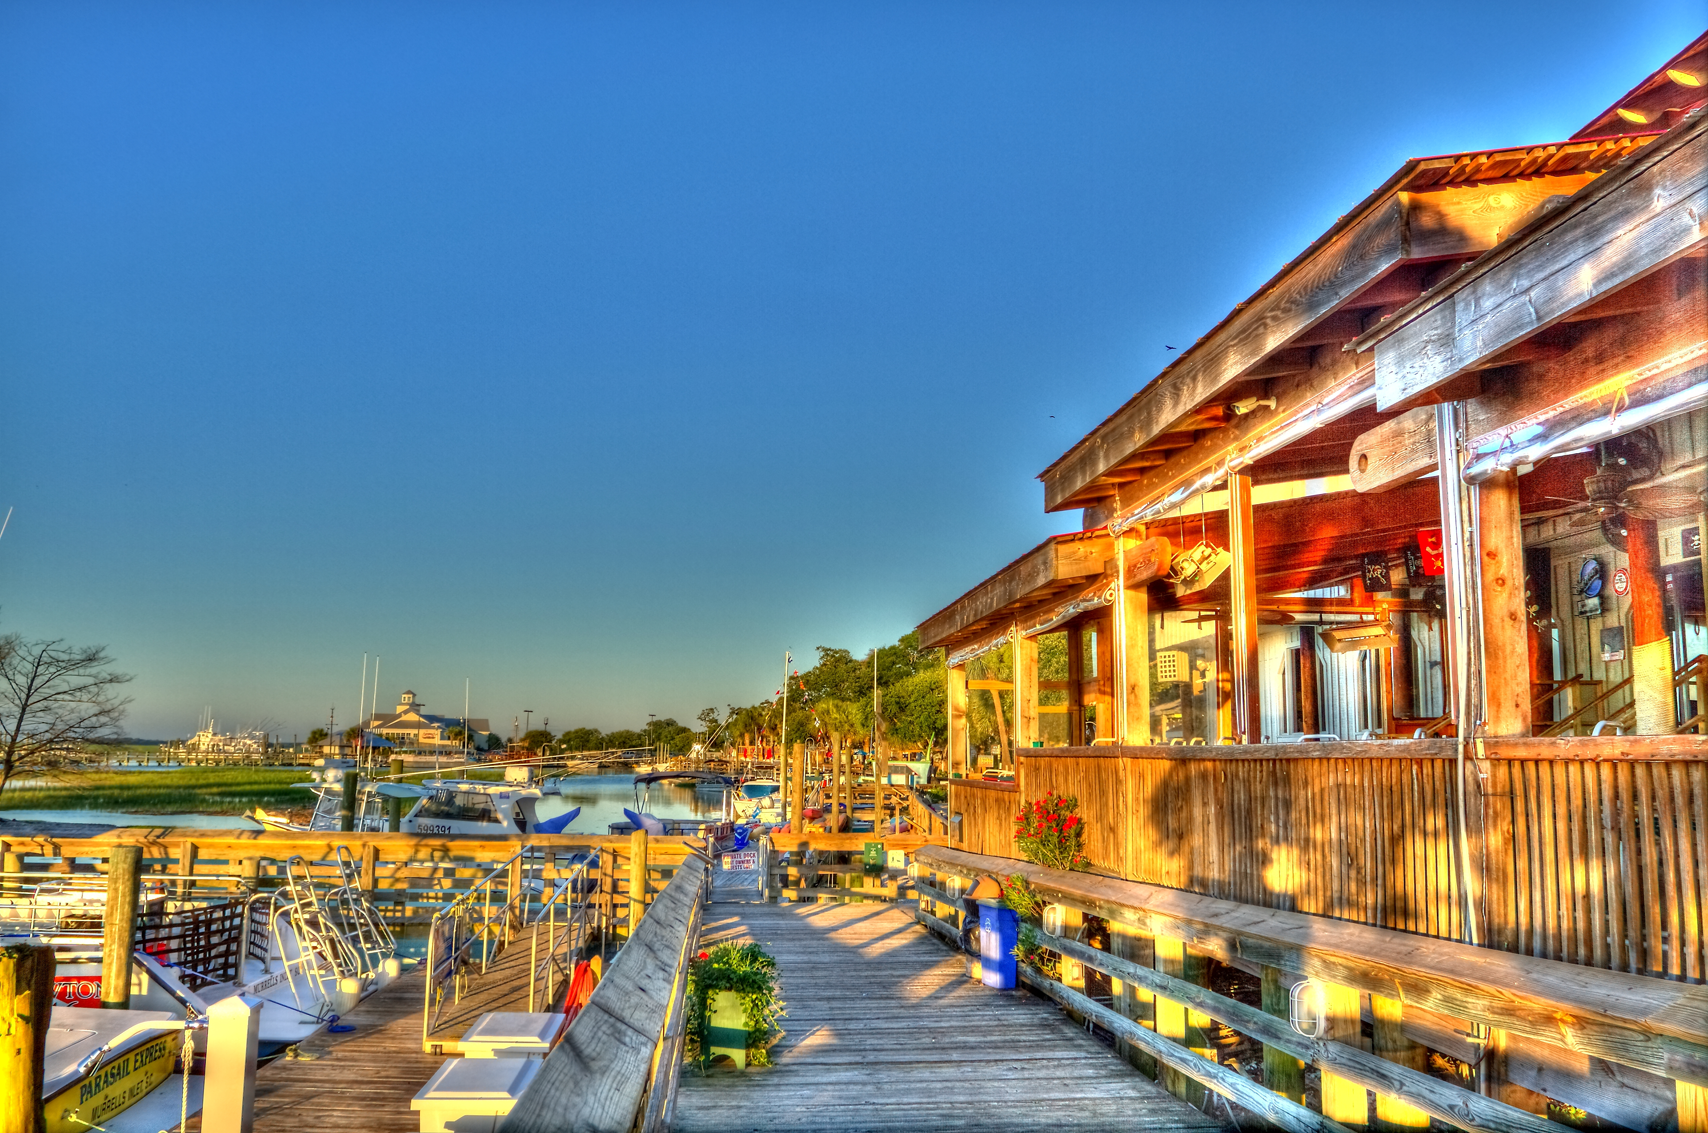 Marshwalk Best Waterfront Dining In The Grand Strand Marina And Boardwalk Murrells Inlet Sc